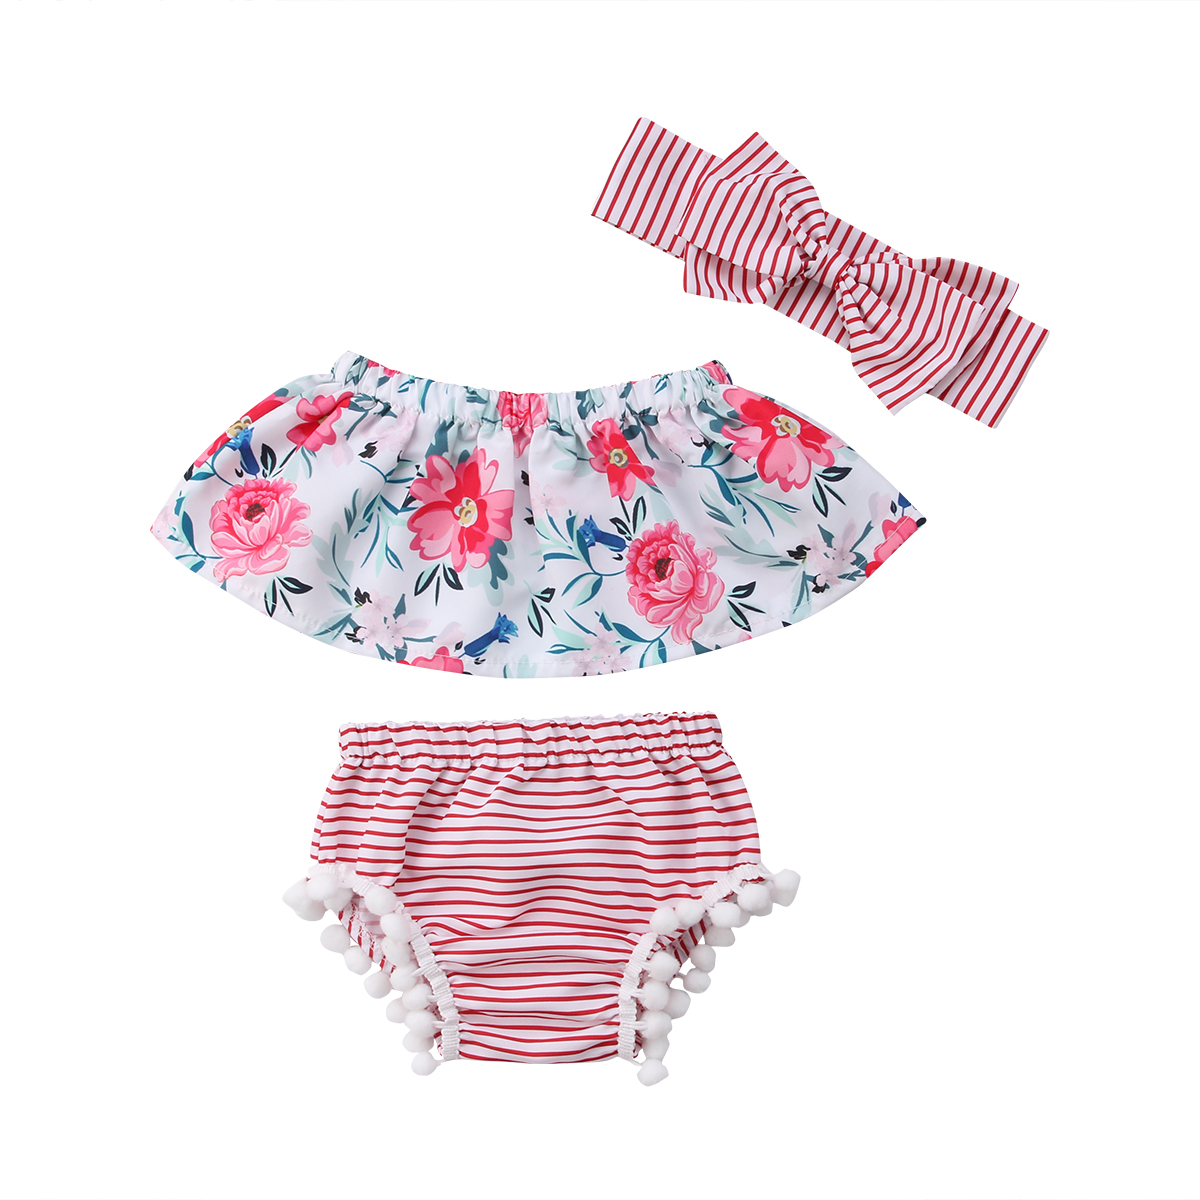 2018 Princess Baby Girls Off Shoulder Floral Tops Briefs Striped Shorts 3pcs Outfits Sweet Summer Set Sunsuit